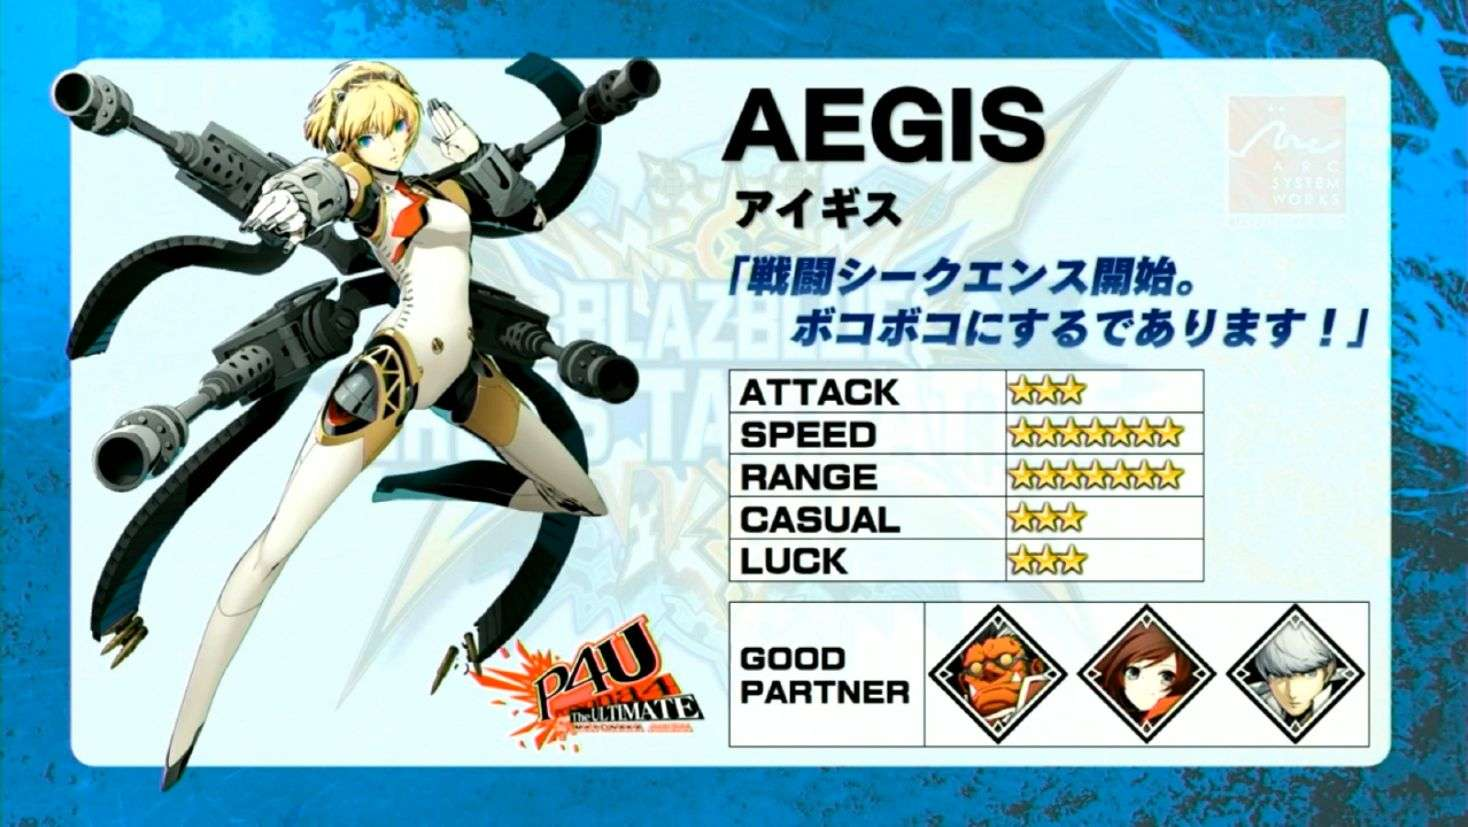 Aigis Announced as Playable Persona Character for BlazBlue